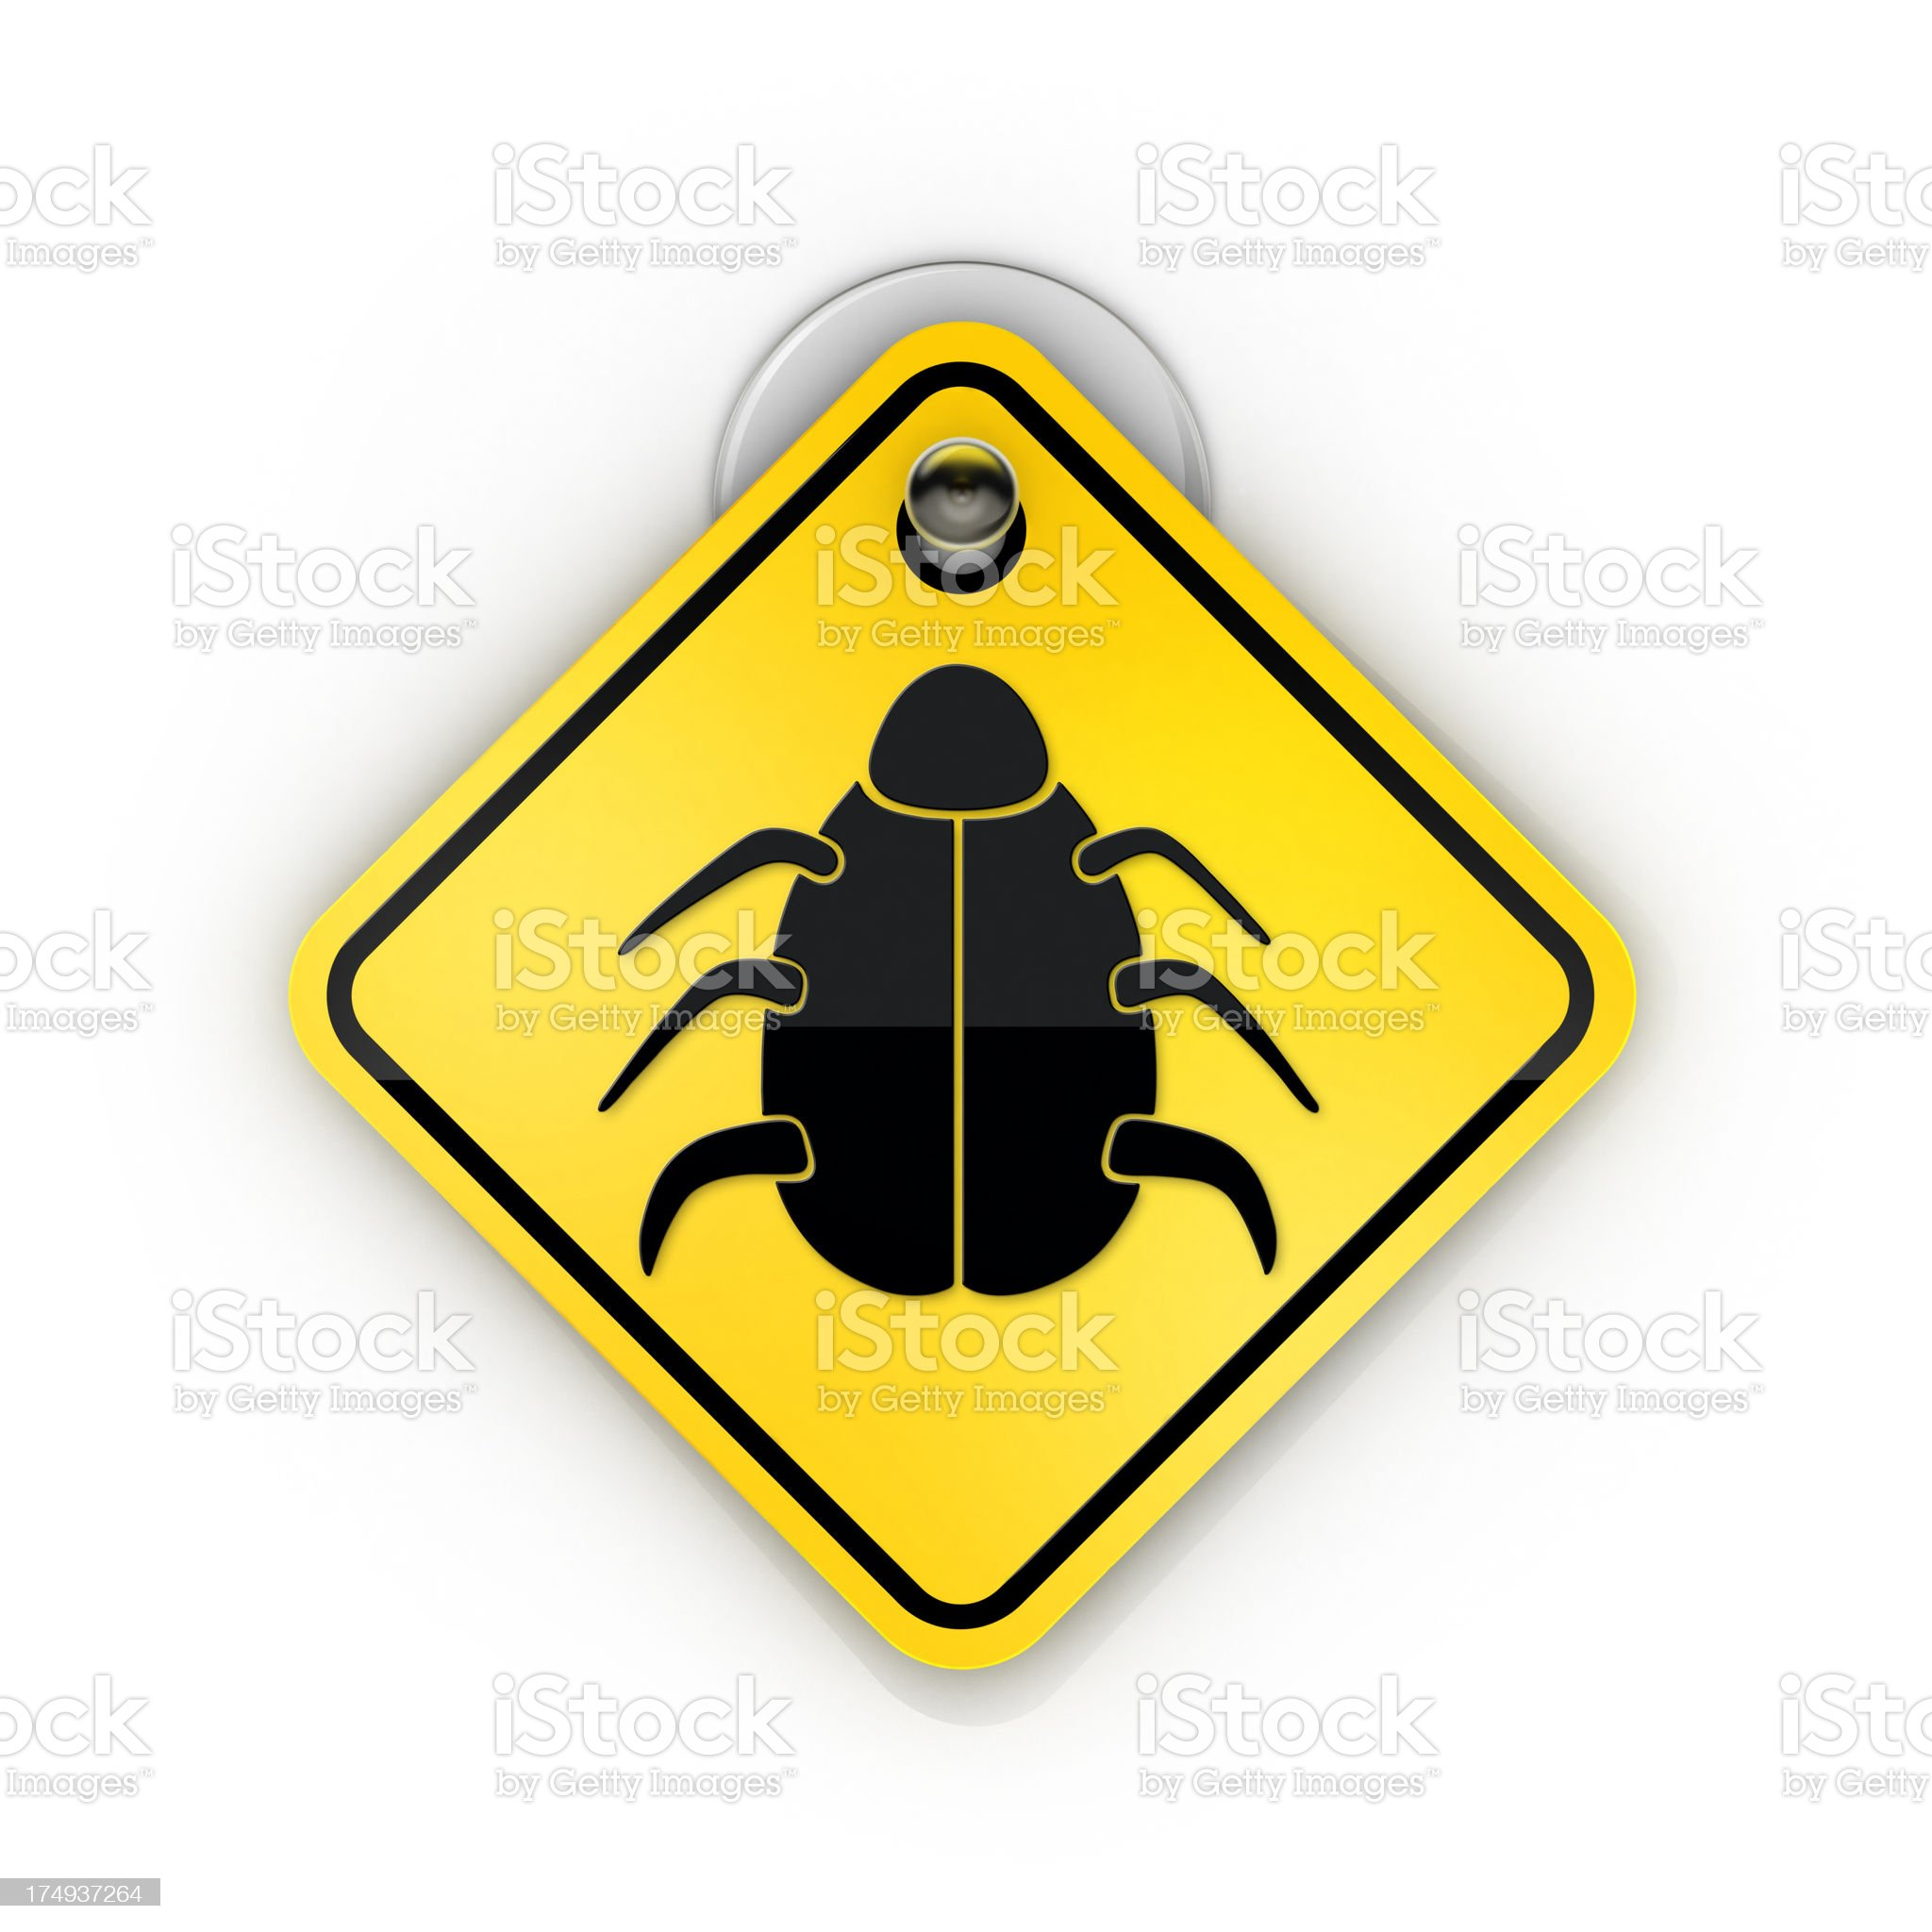 insect bug or Virus Sticky warning royalty-free stock photo